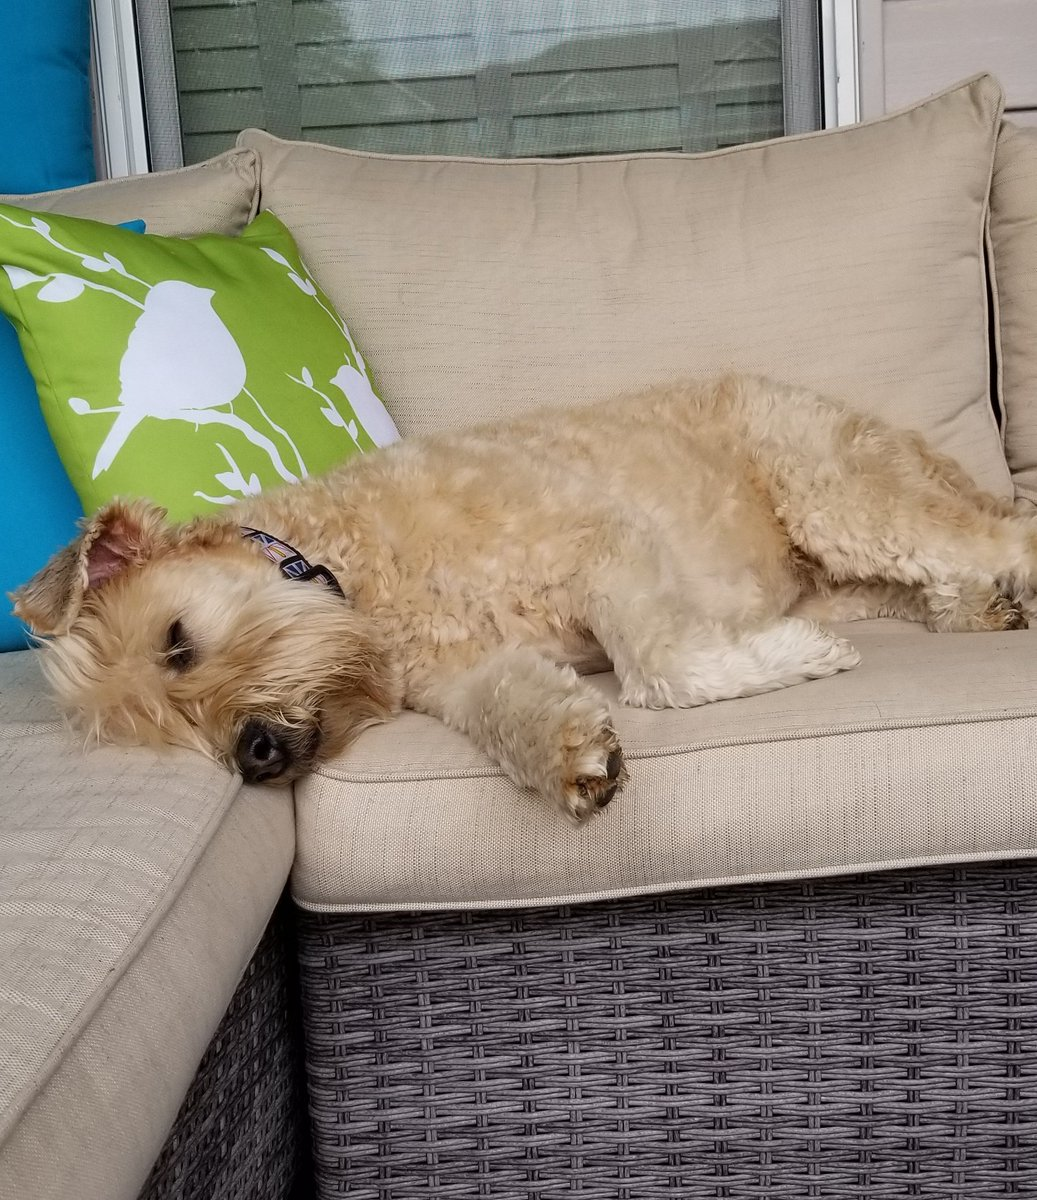 Nothing like a nap outside on a Saturday Afternoon! #relax #weekendvibes #dogs #dogsoftwitter #wheatenterrier<br>http://pic.twitter.com/dLsgy1kDoA